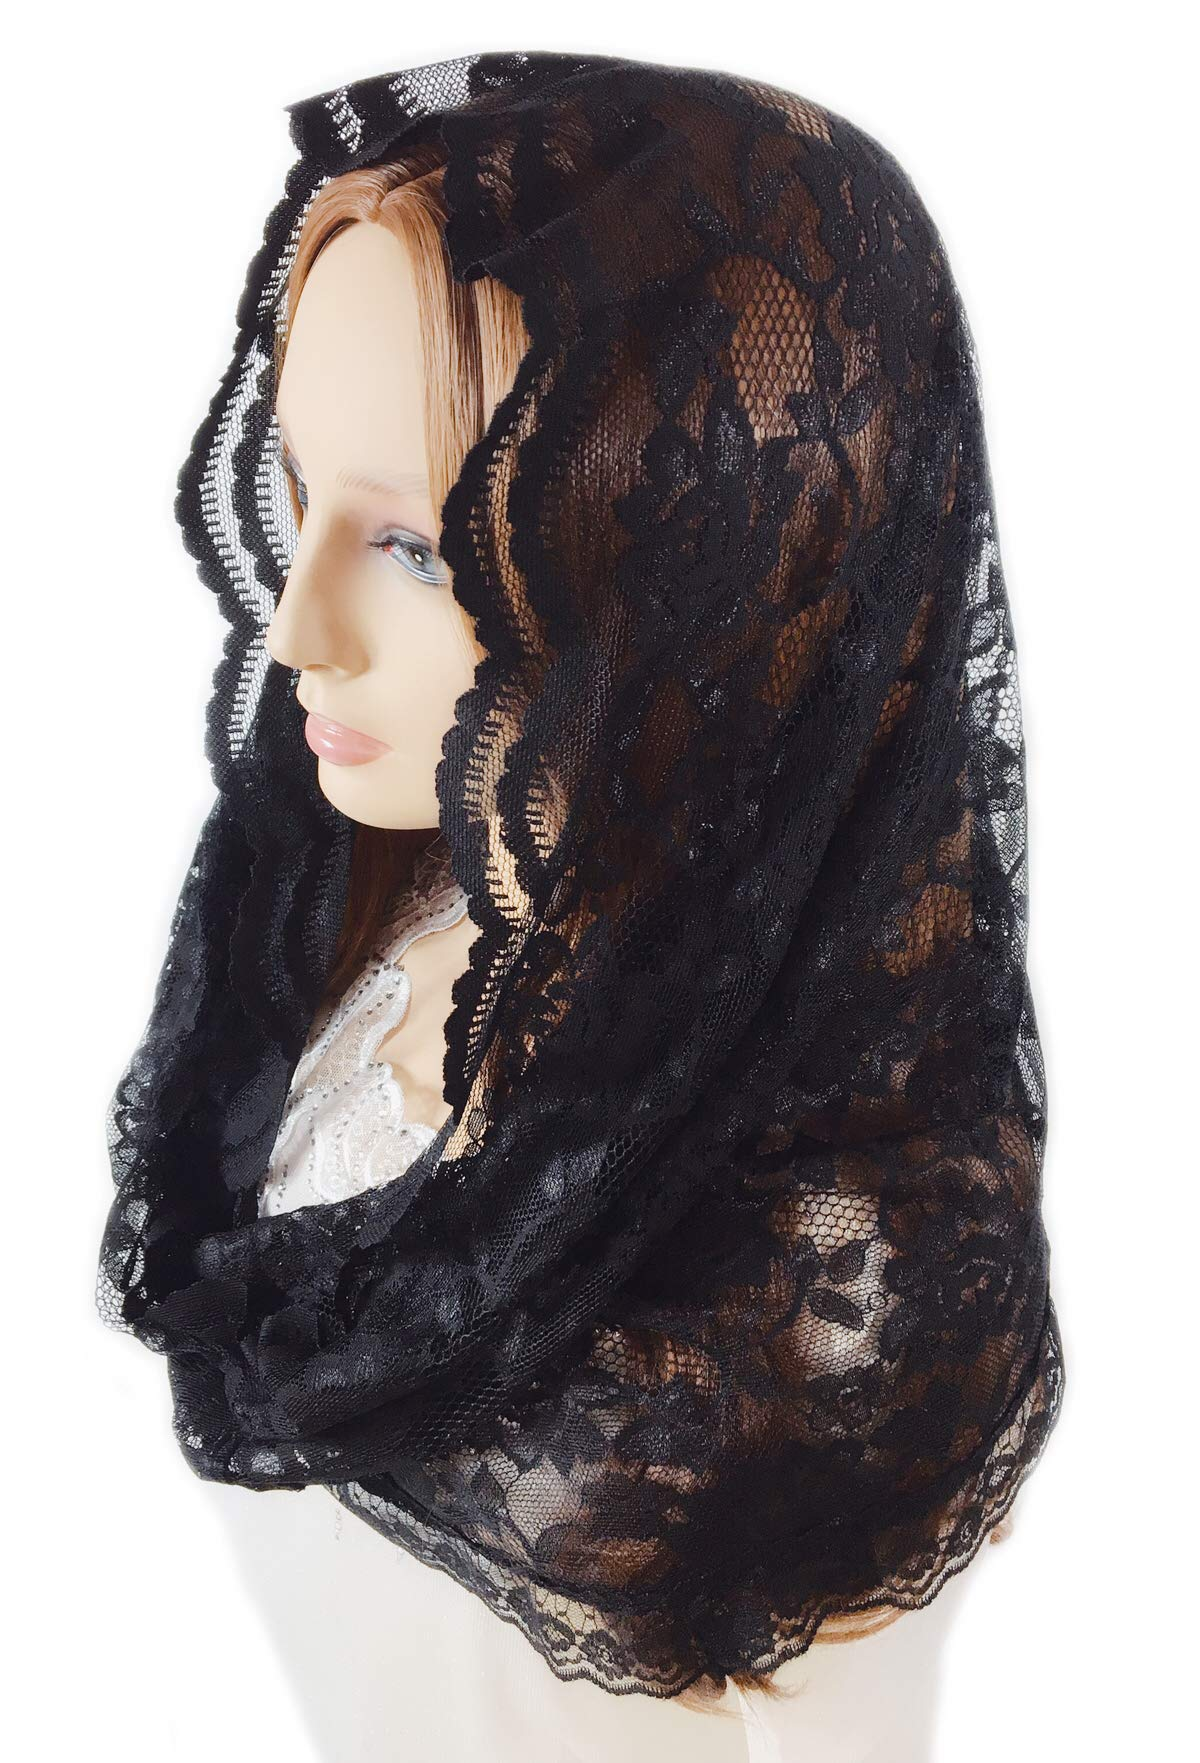 Pamor Infinity Floral Veils Scarf Catholic Church Veil Head Covering Latin Mass Lace Mantilla with Free Hairclip (black) by PAMOR (Image #2)